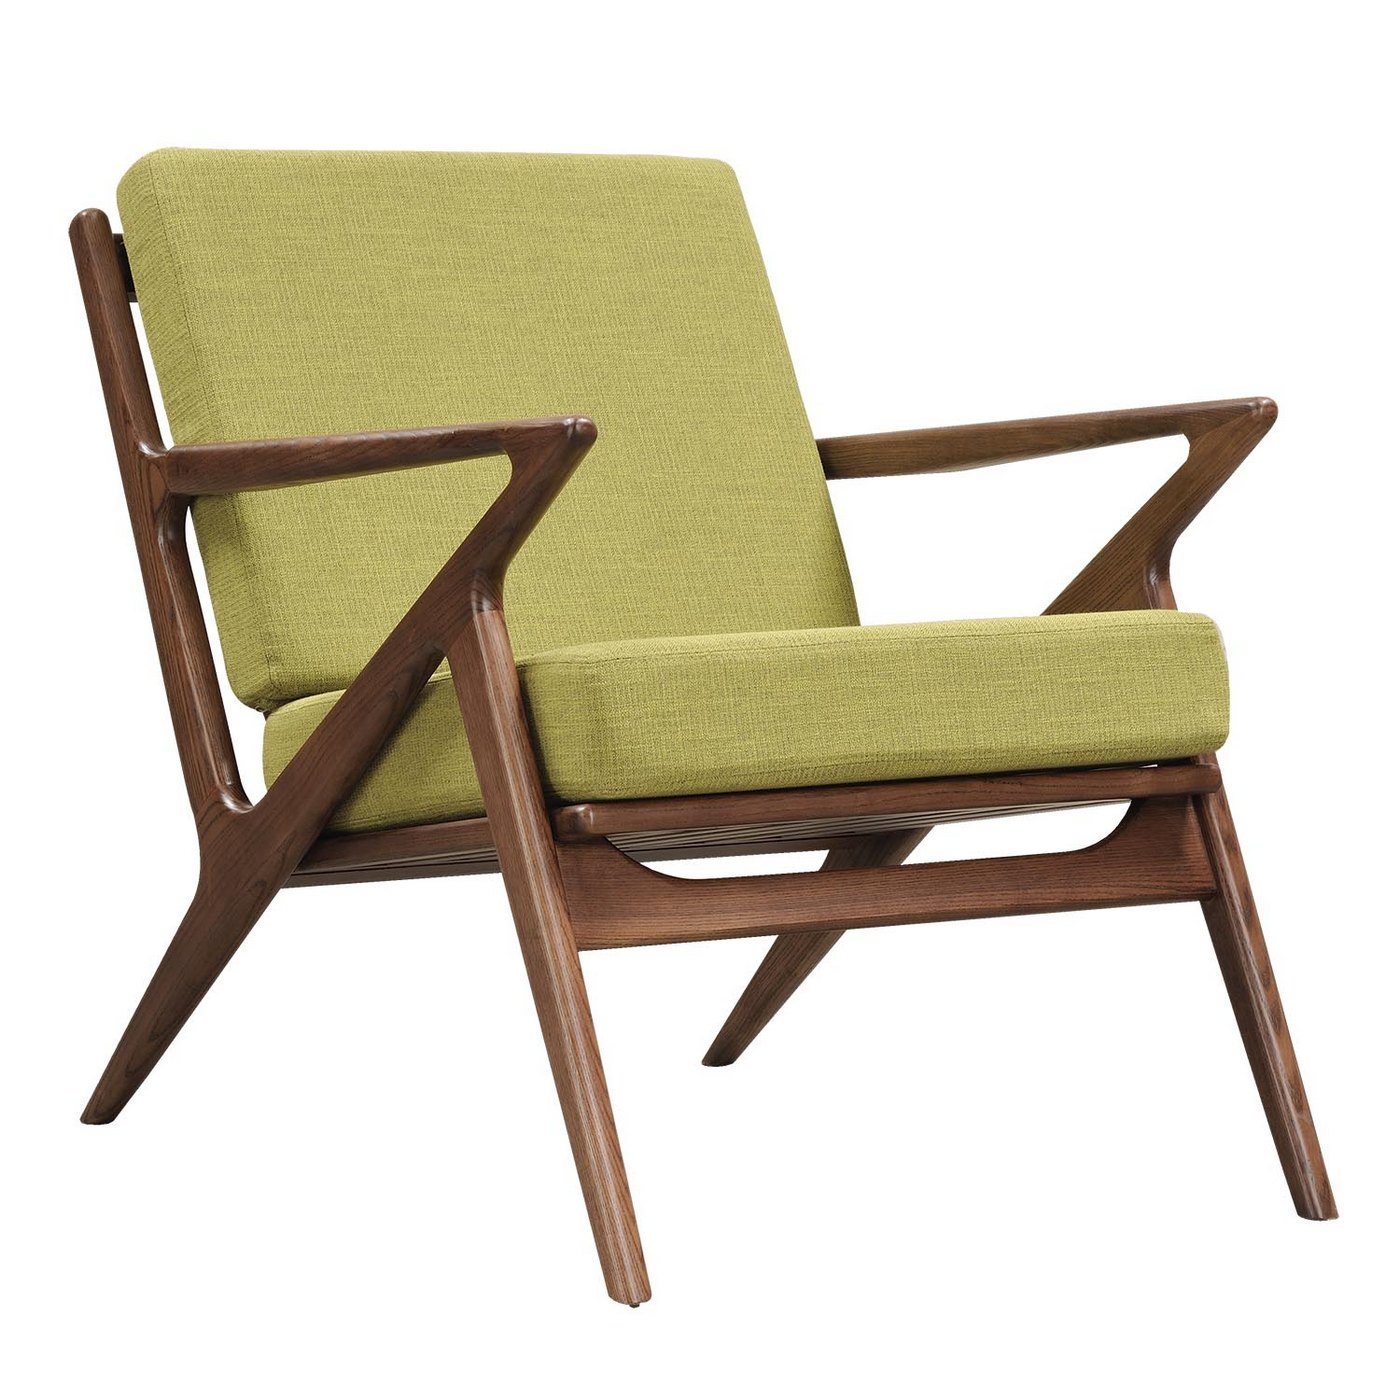 Mid Century Modern Wood: Zain Mid Century Modern Green Fabric Chair With Wooden